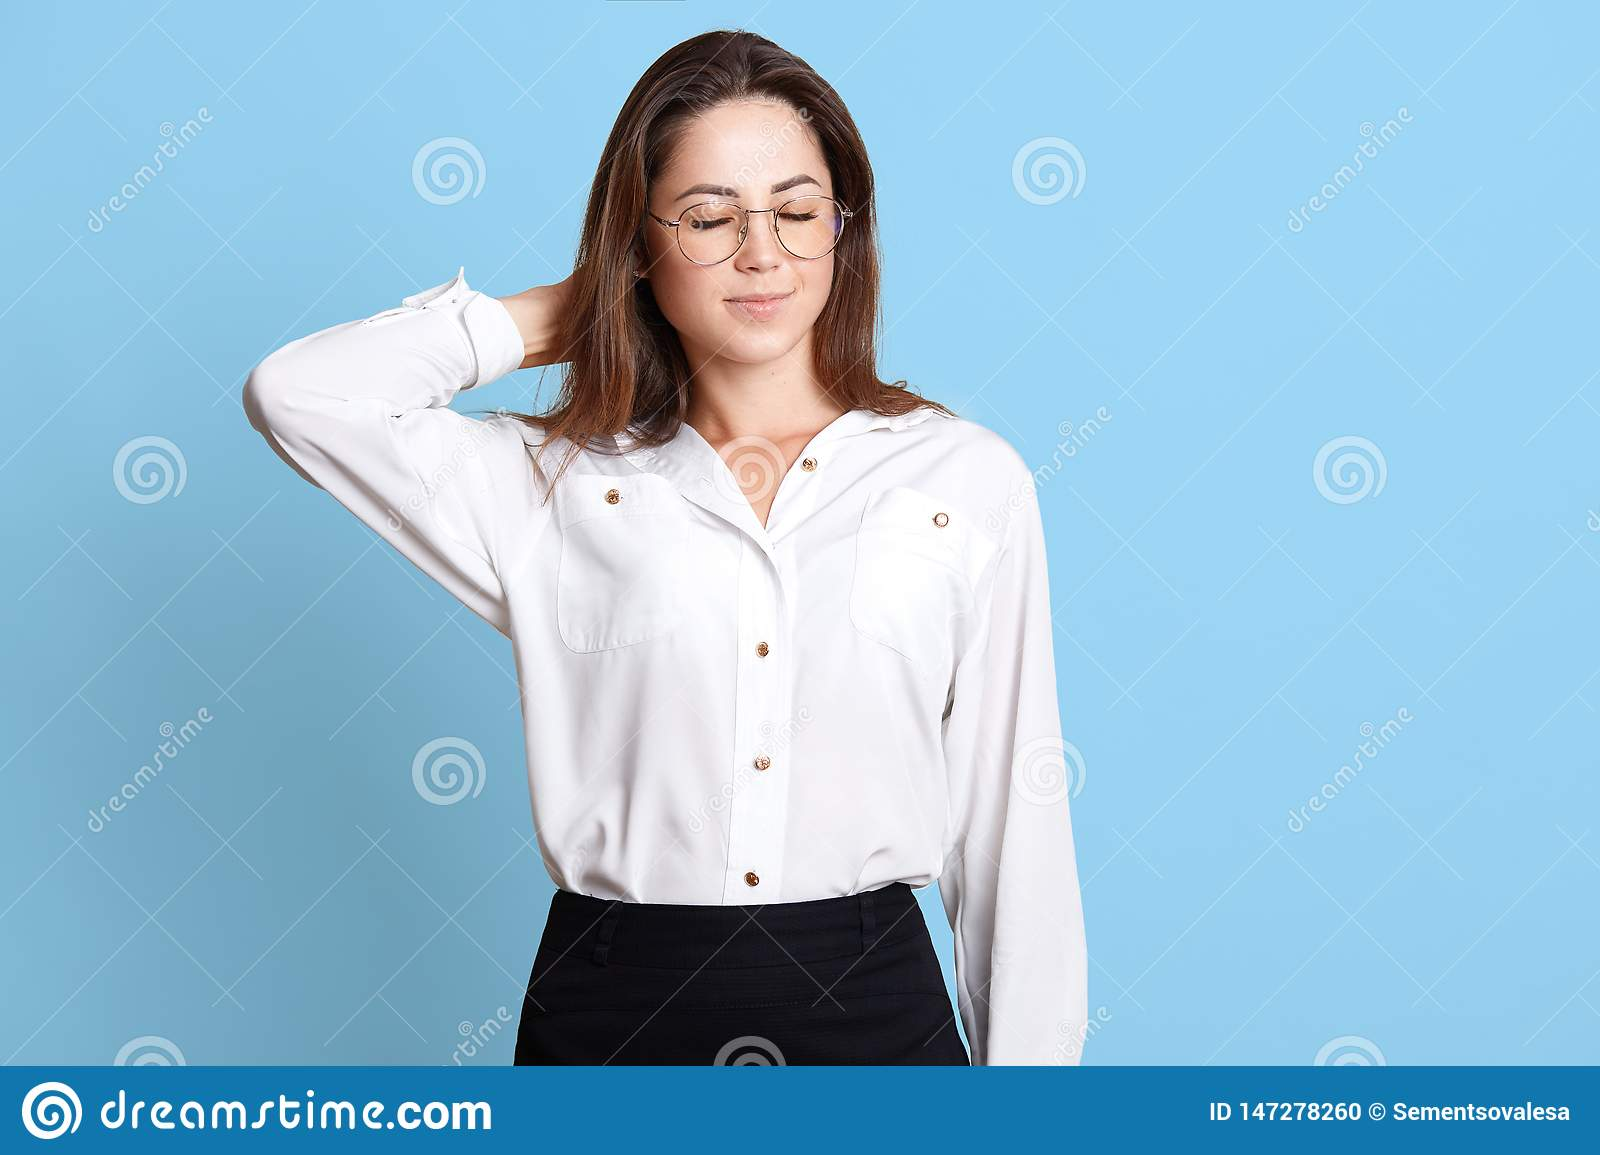 Portrait of tired business woman with neck pain, young Caucasian woman in formal wear massaging her neck with closed eyes, posing